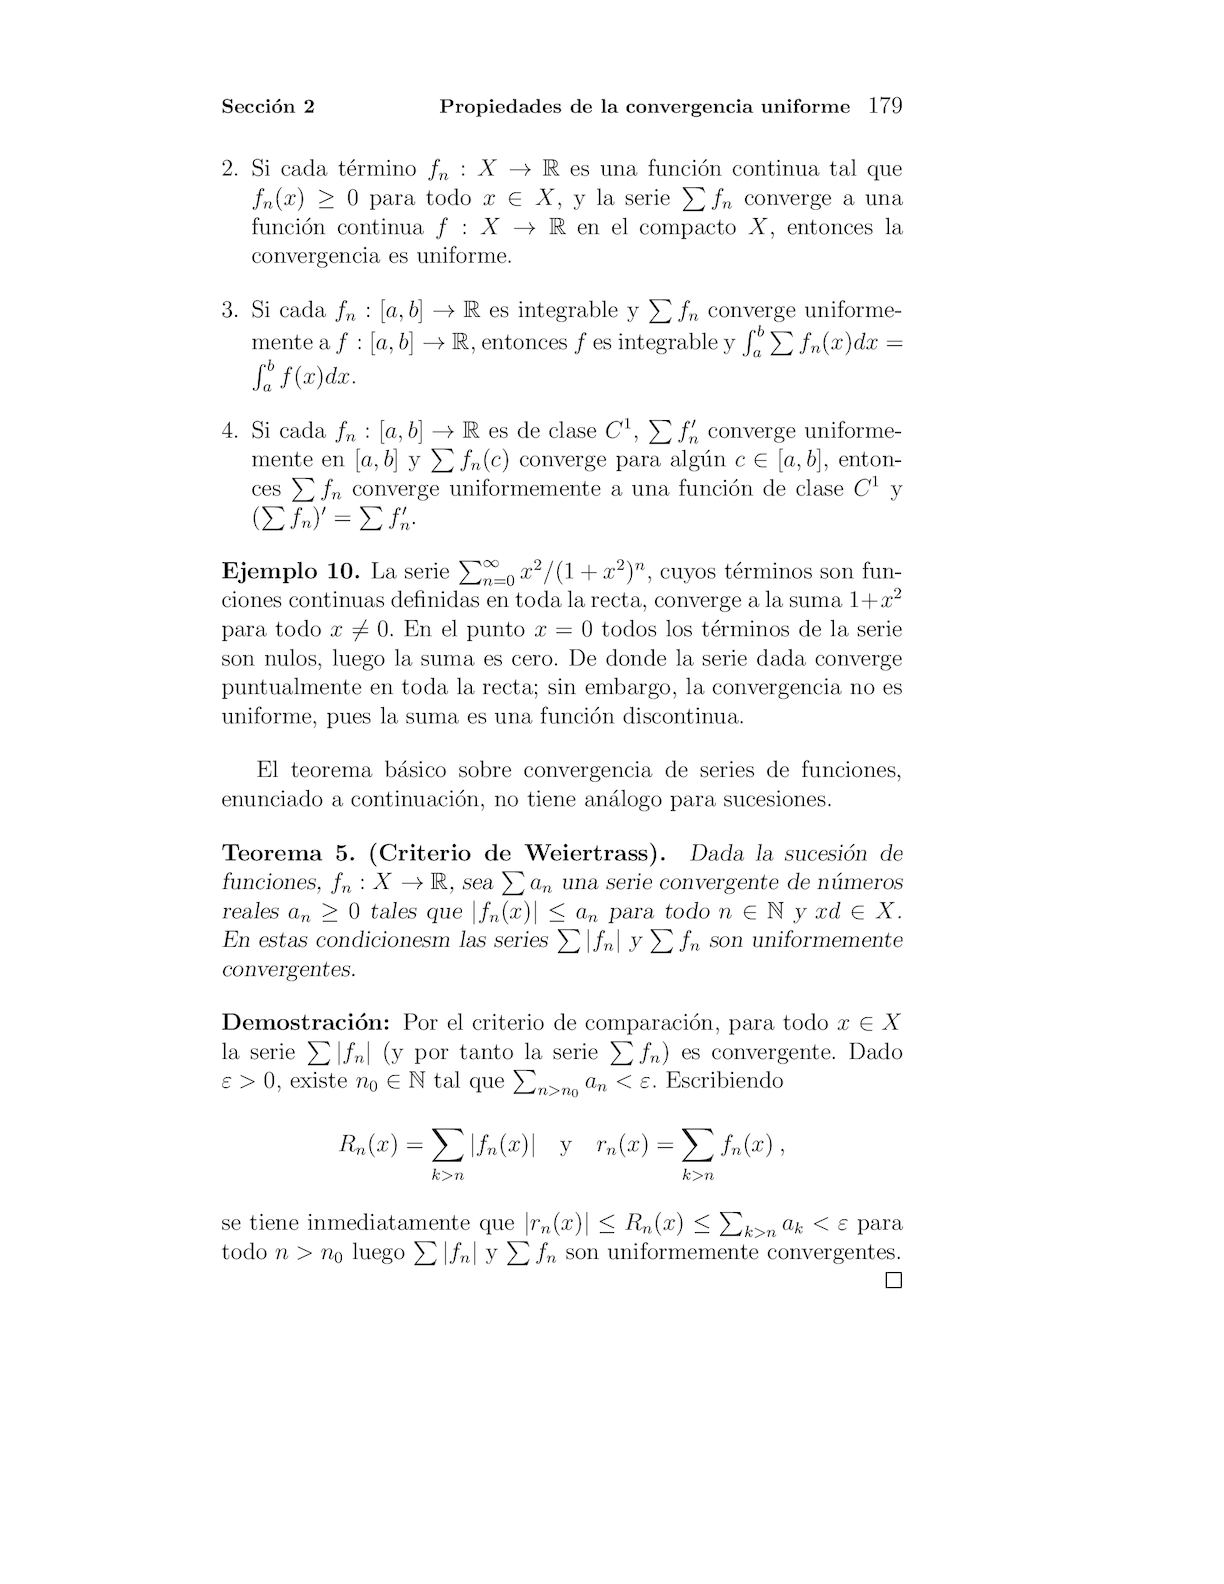 Page 191